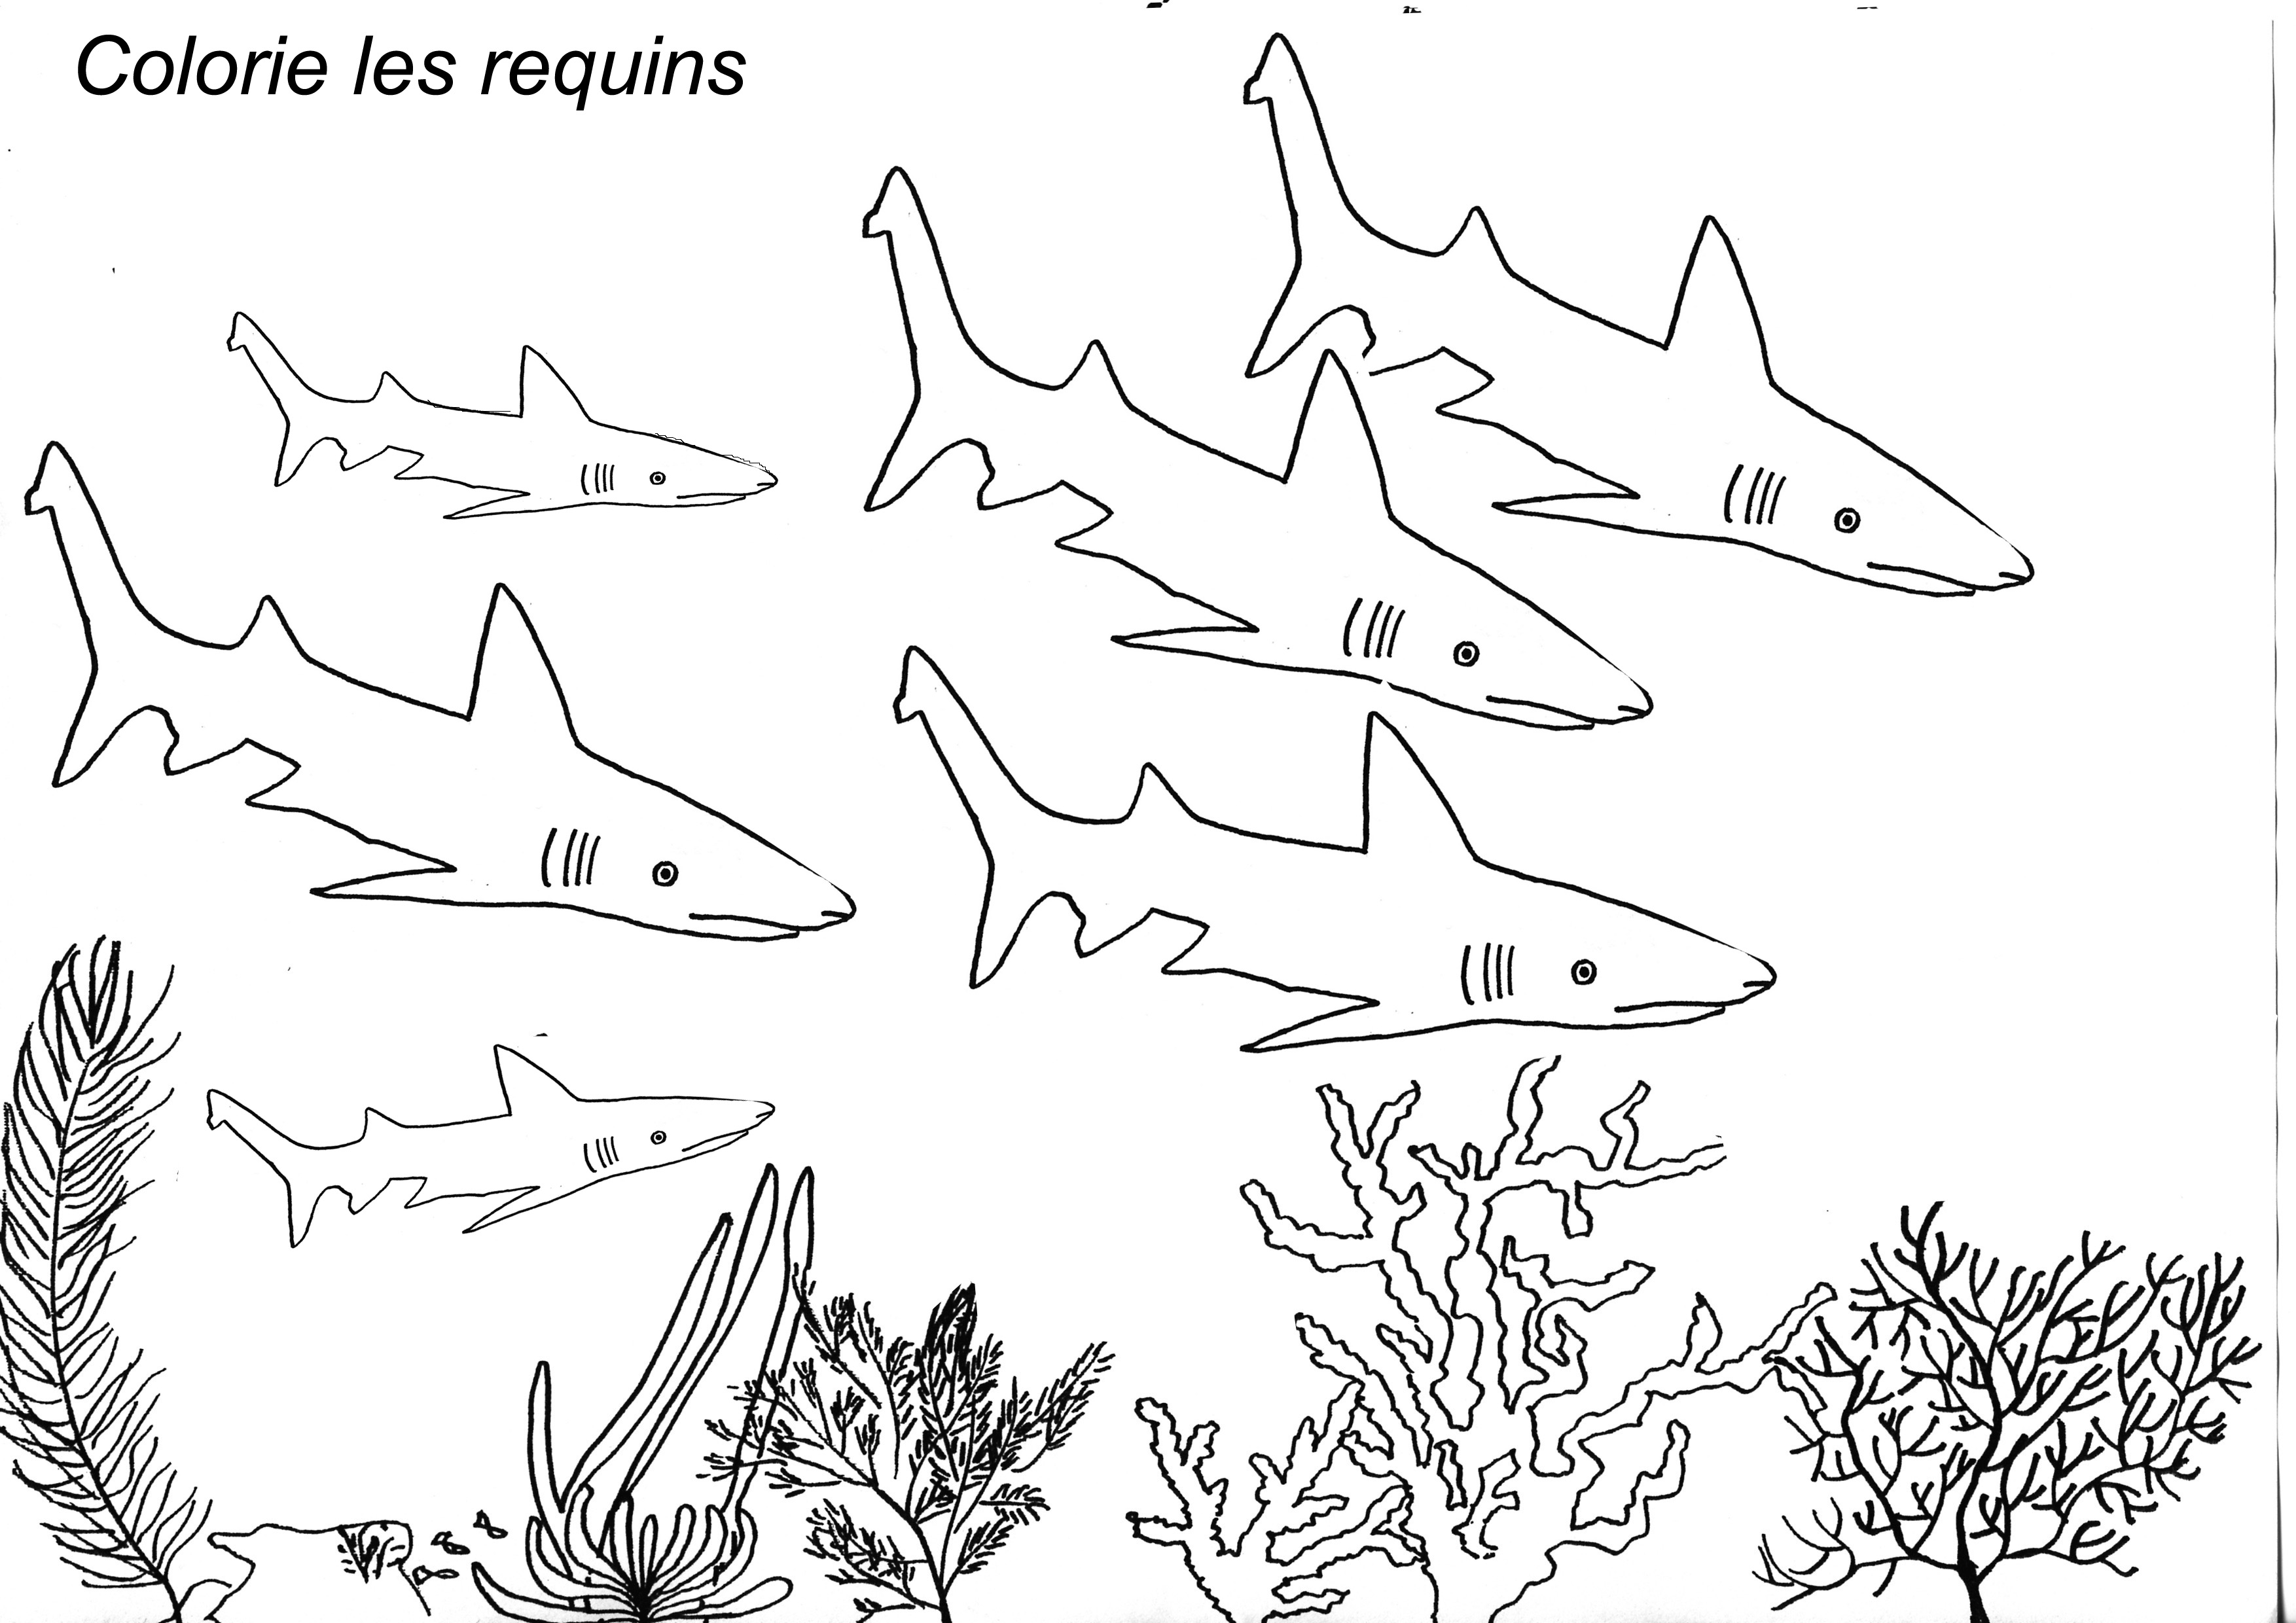 colorie des requins